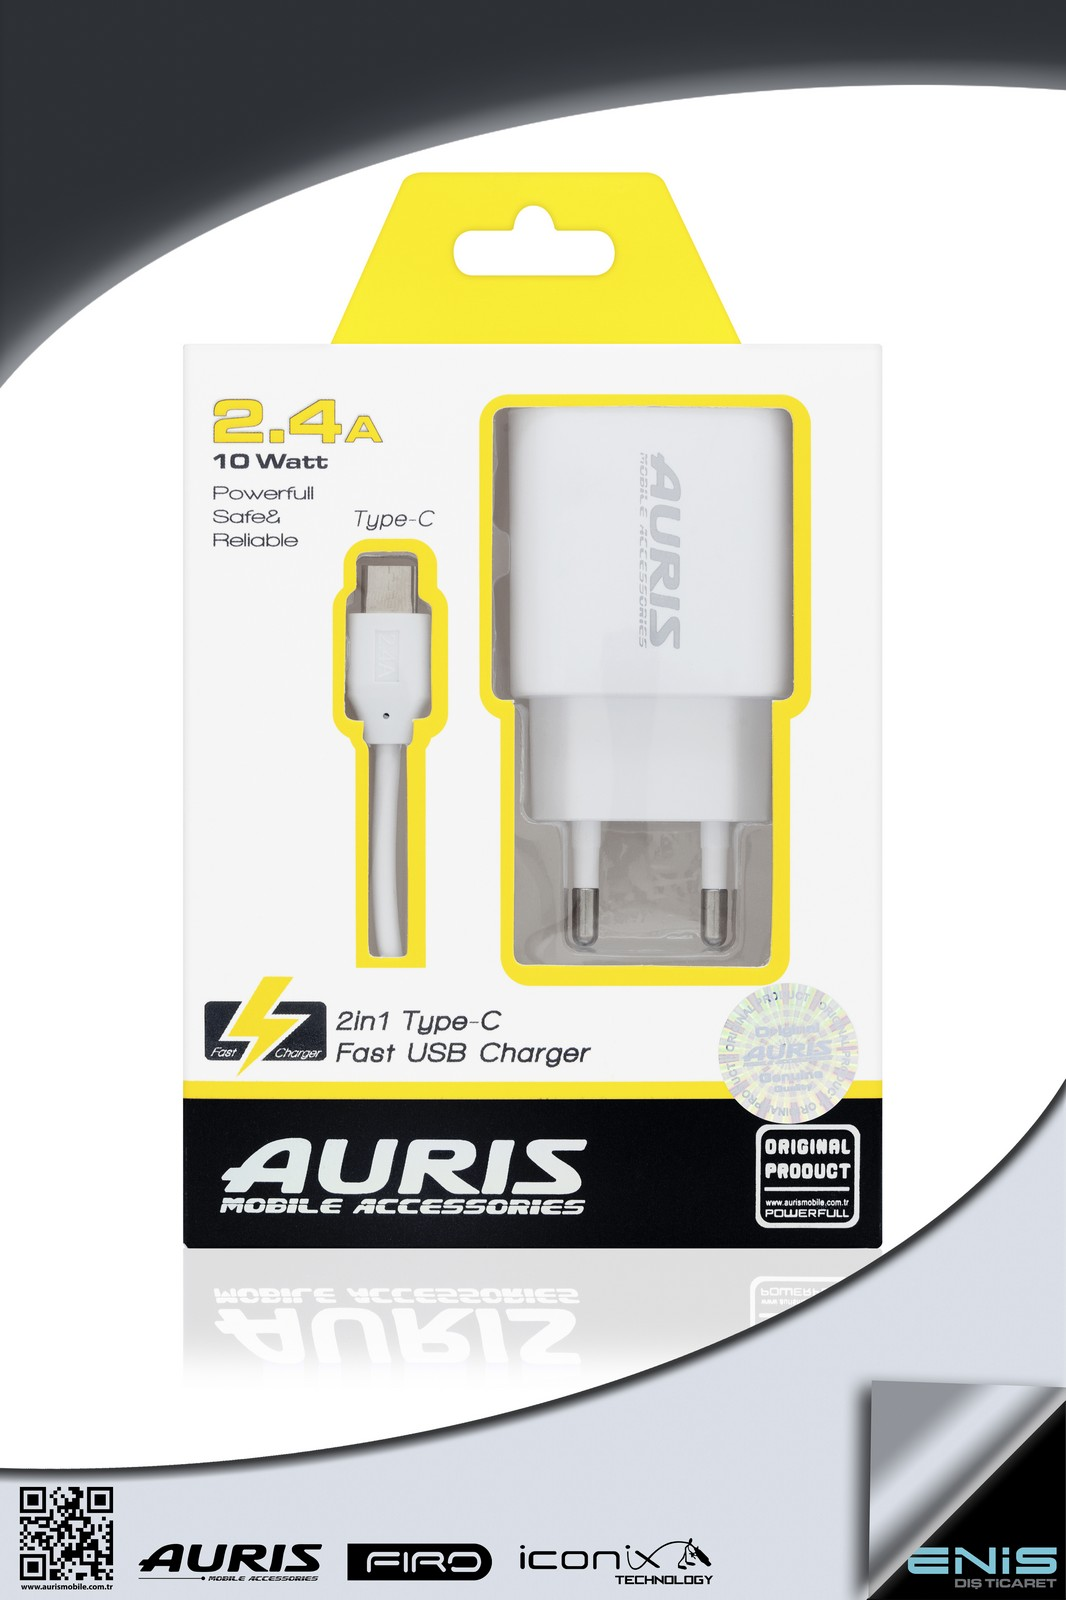 2in1 TYPE-C FAST USB CHARGER 2-4 A 10W